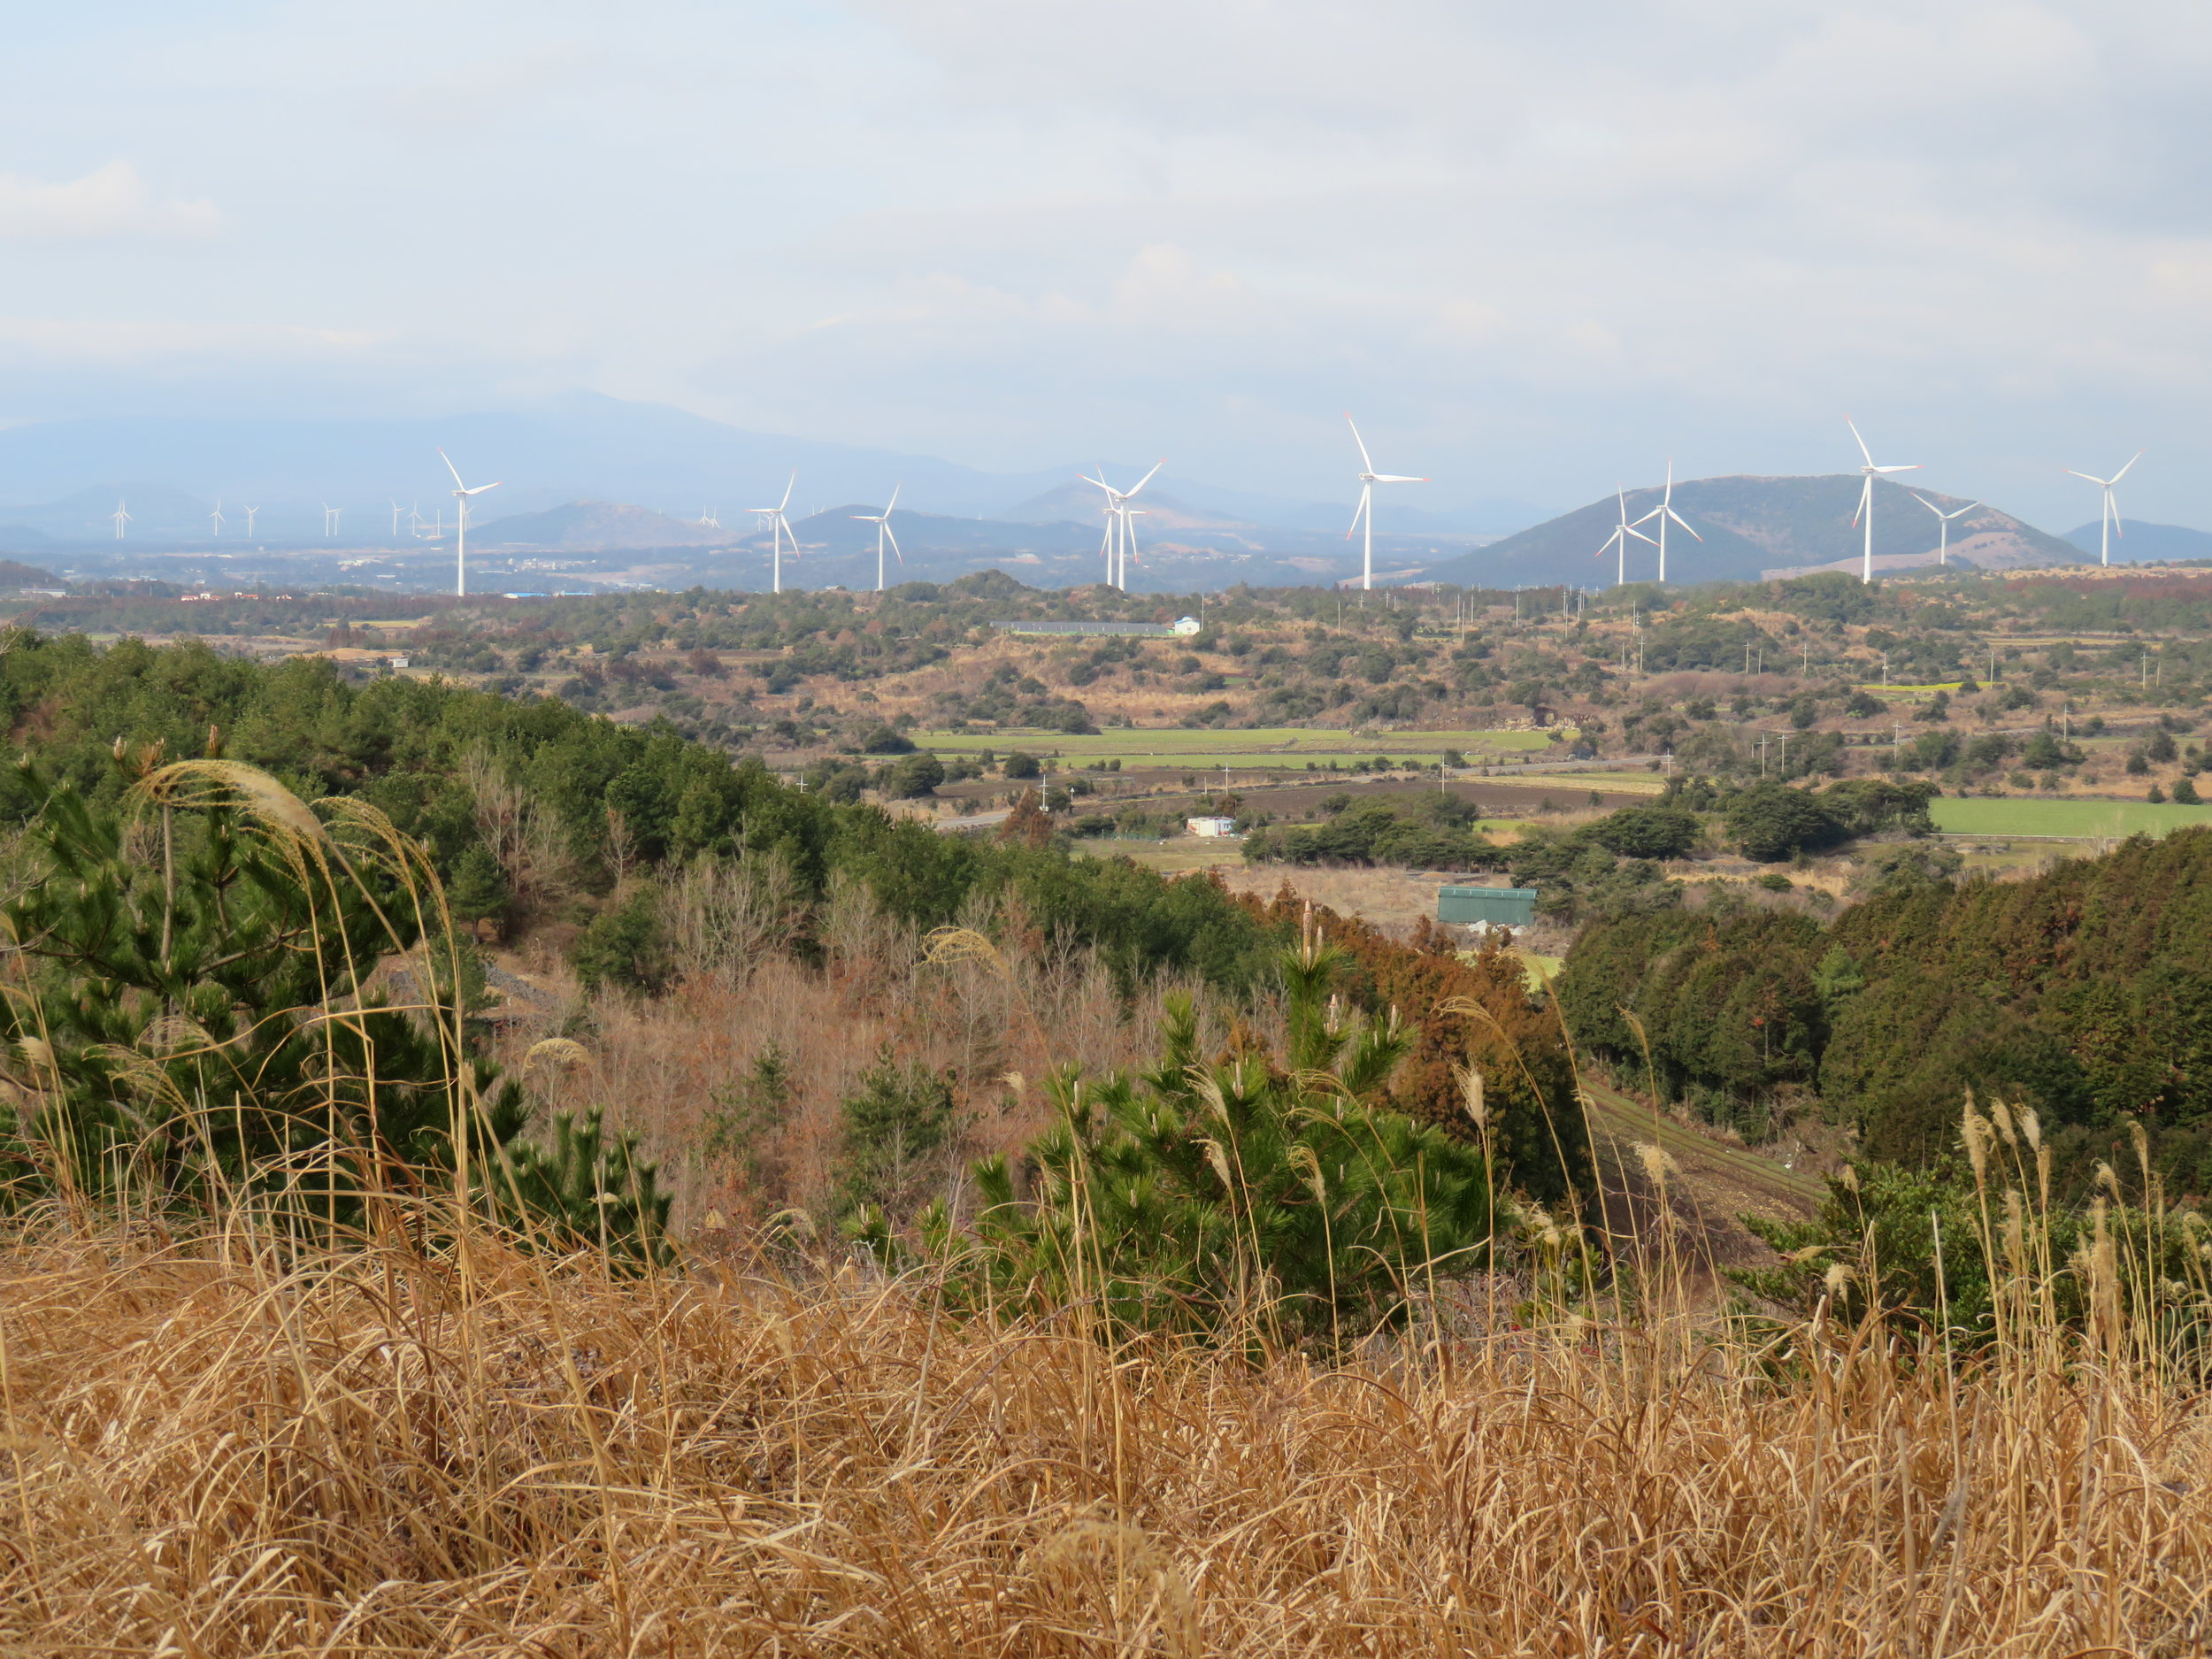 A high proportion of Jeju's energy is generated by wind power